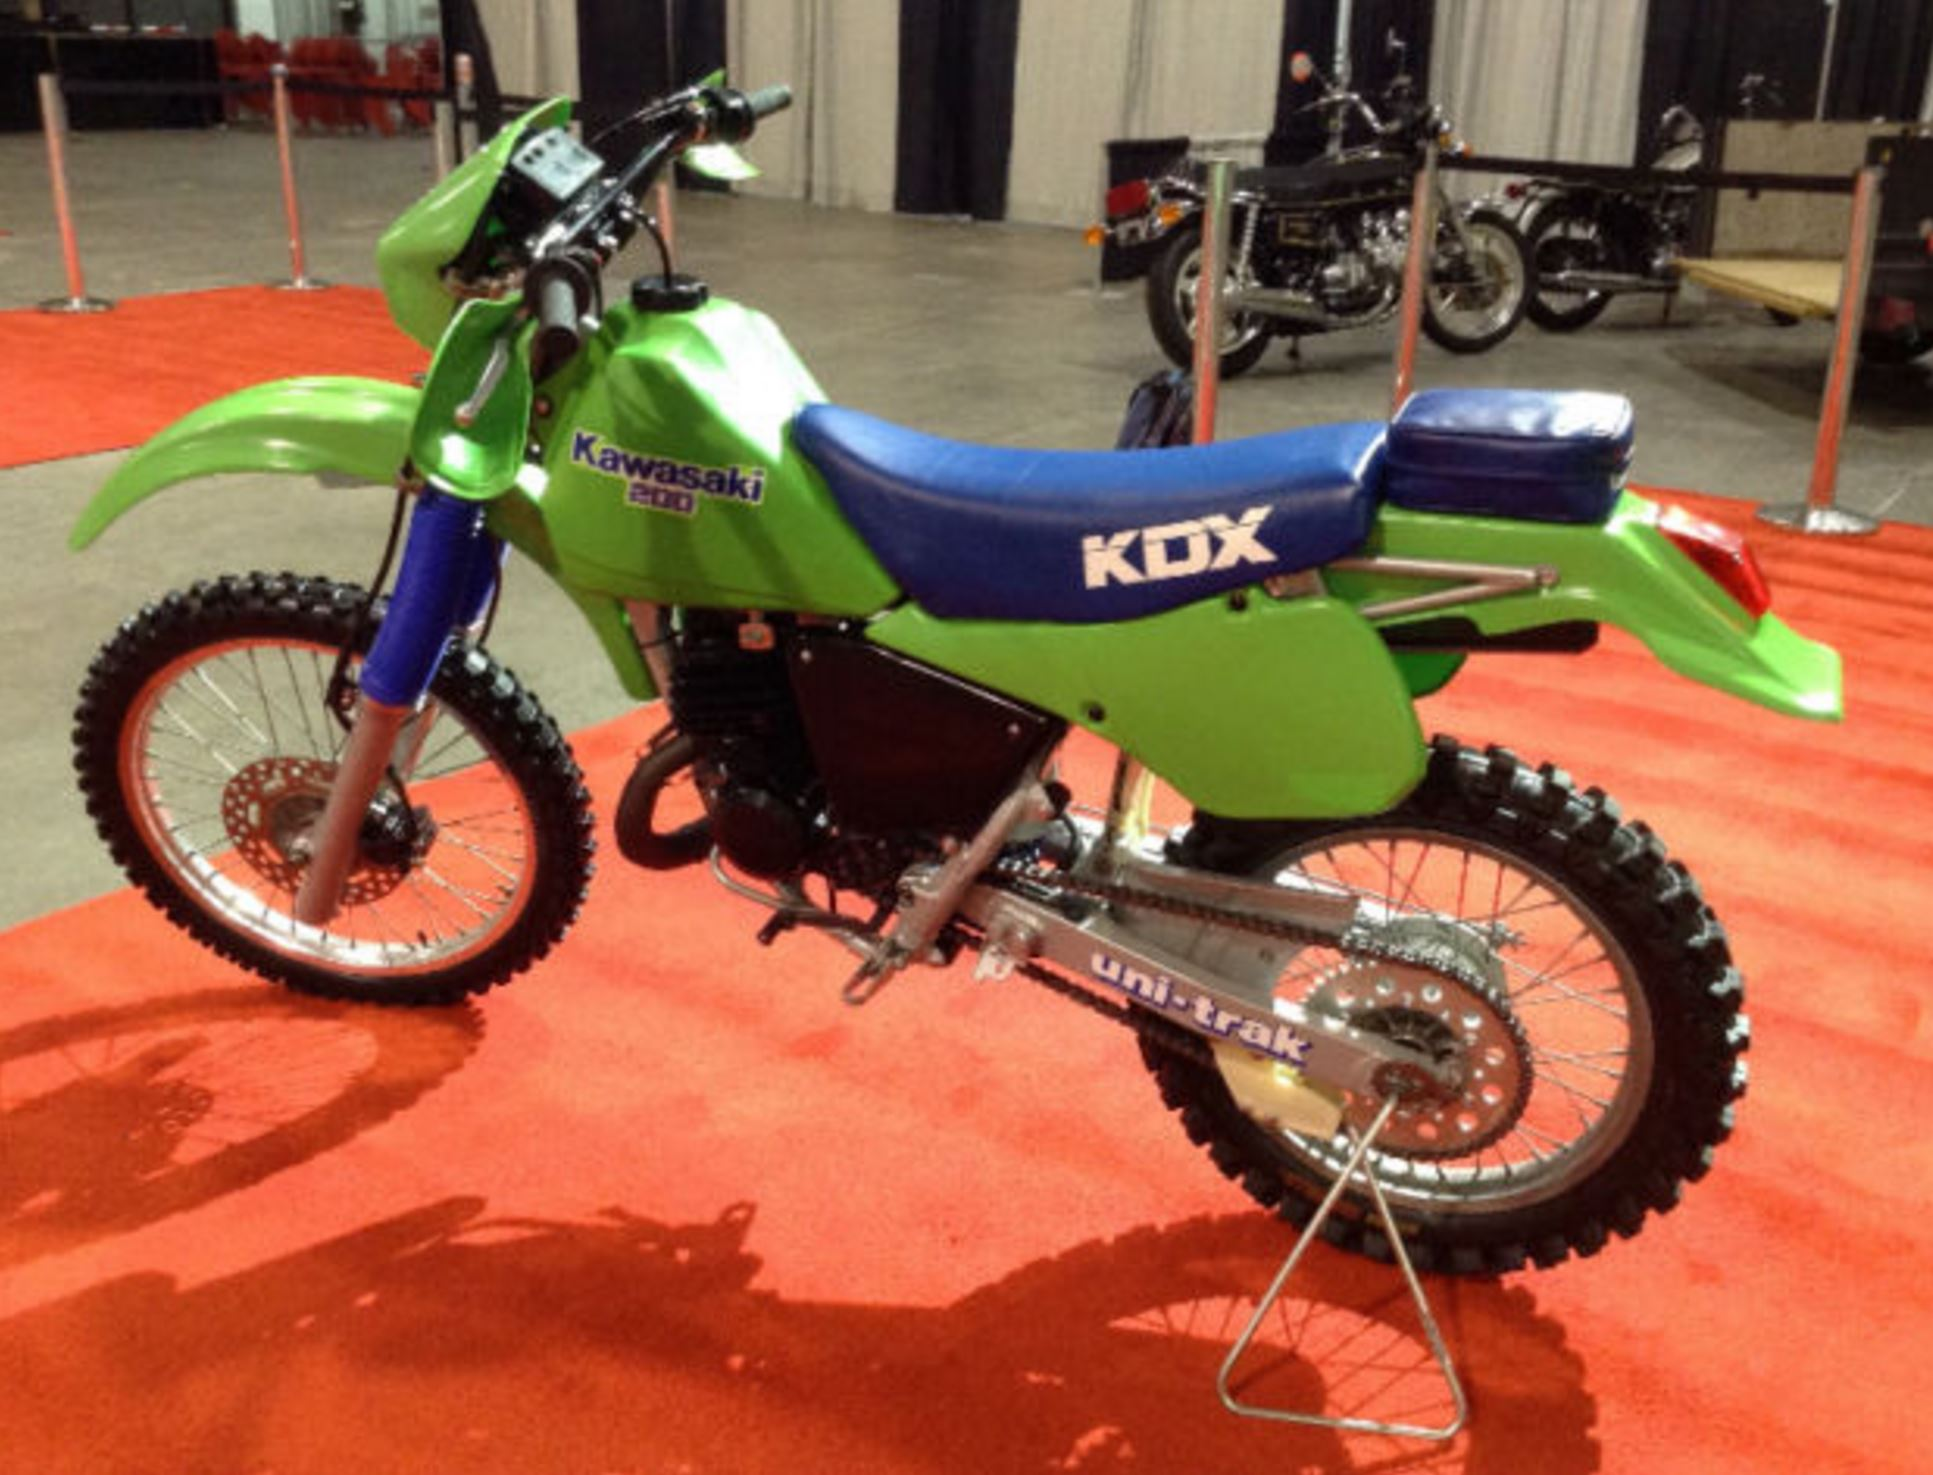 It was well loved by riders, so much so that even Kawasaki introduced a 250  of the KDX in 1991, most people preferred the 200 instead.